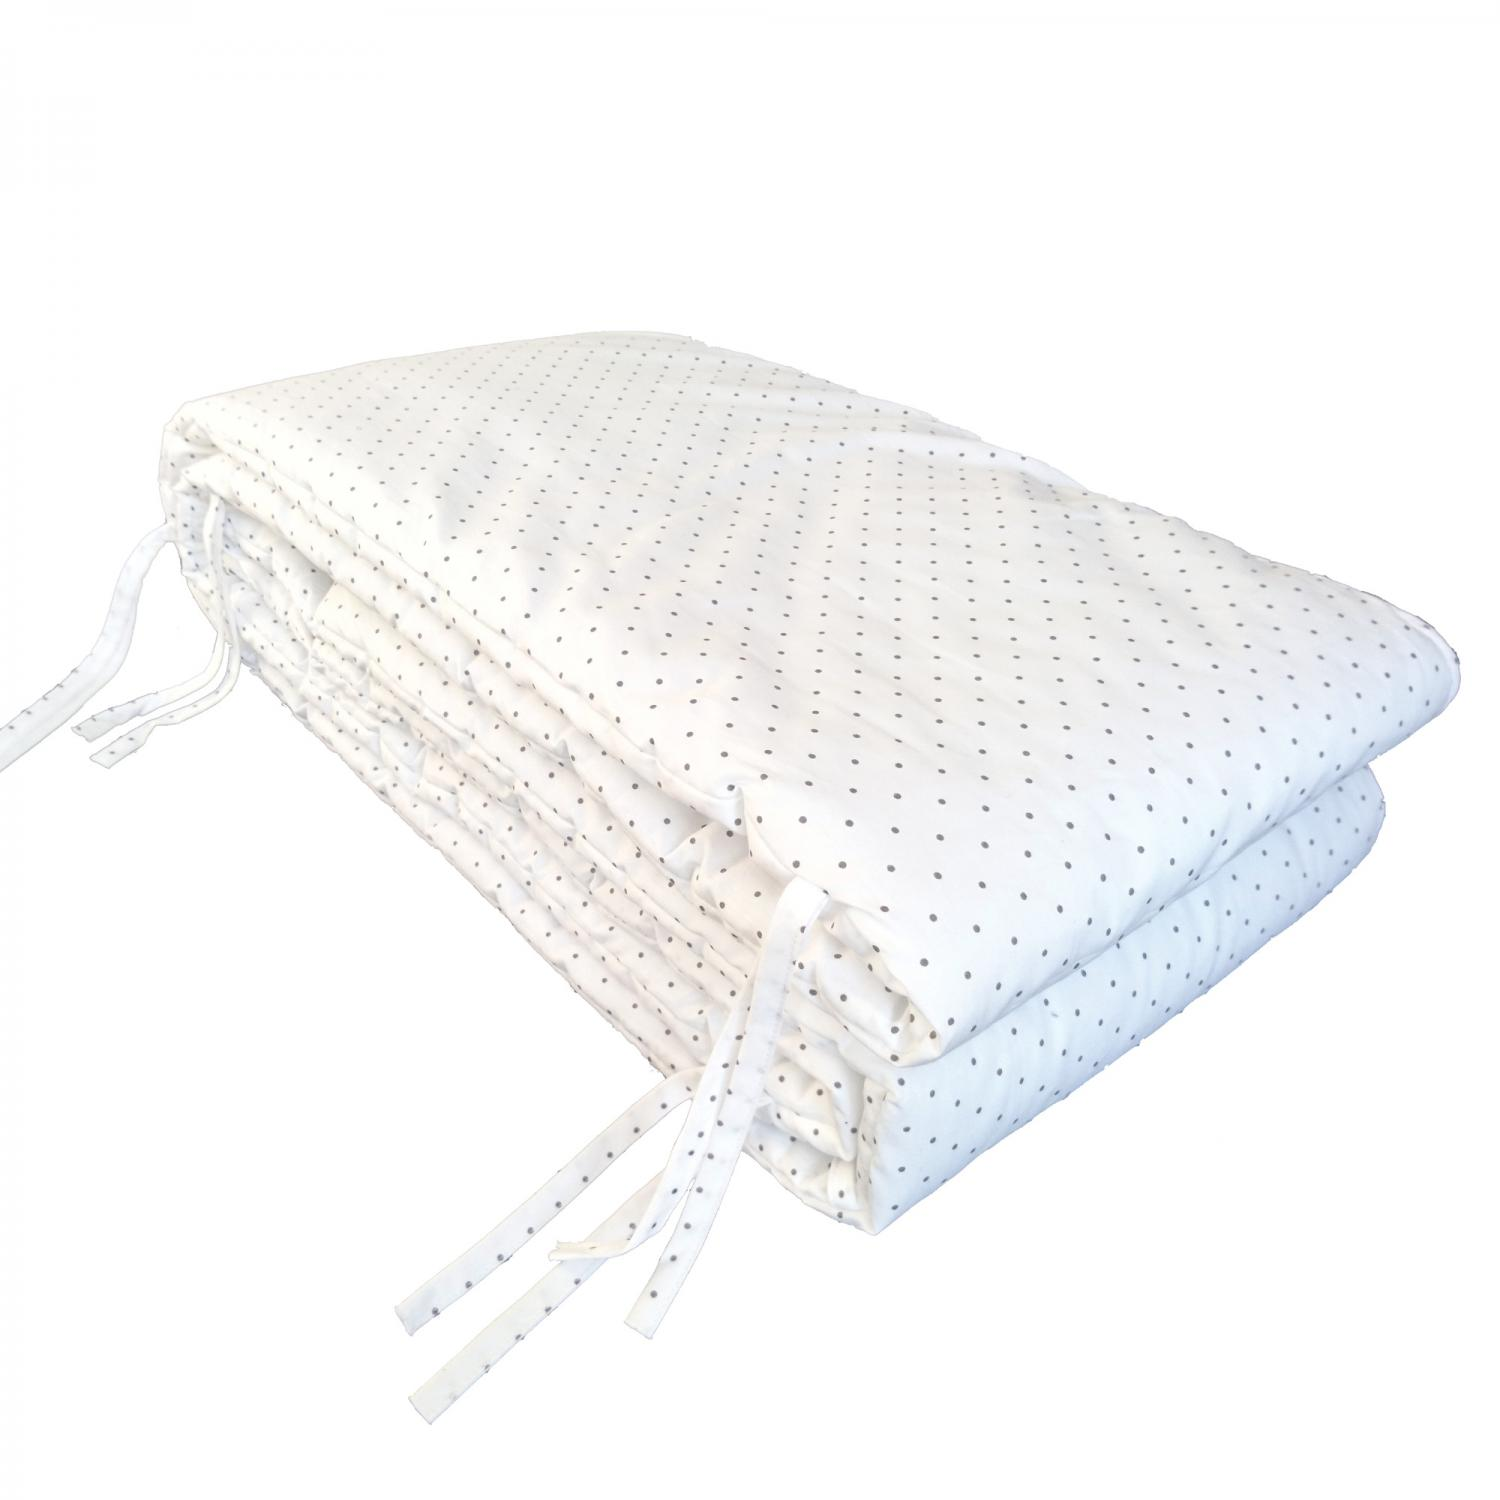 Bed bumper white dotty